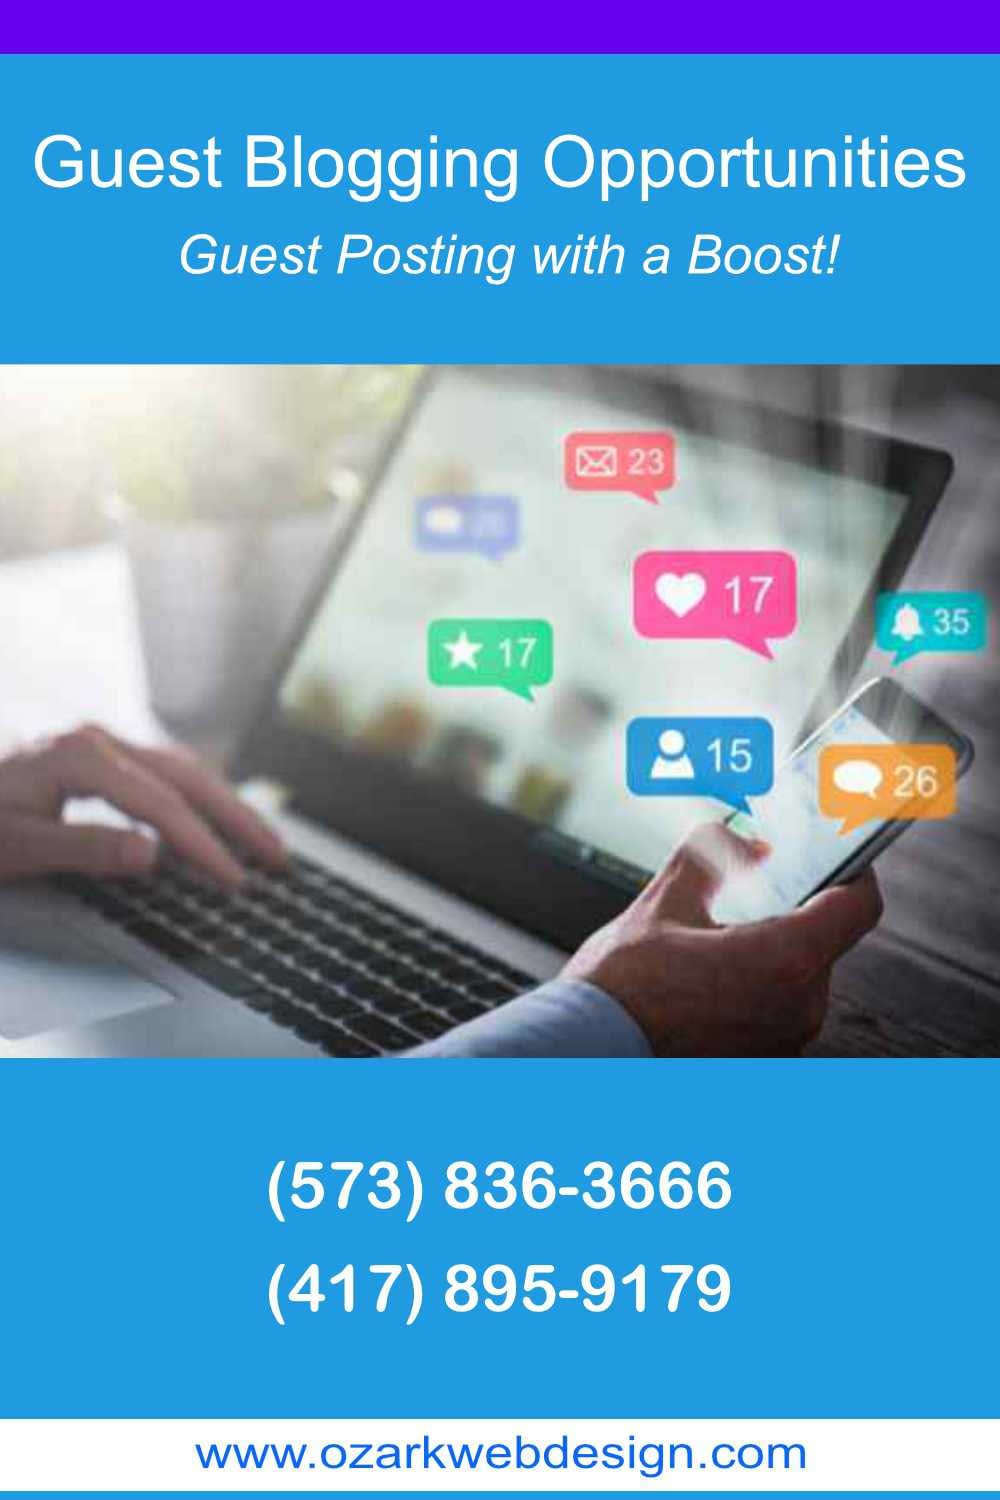 Guest blogging opportunities and blogs for guest posting